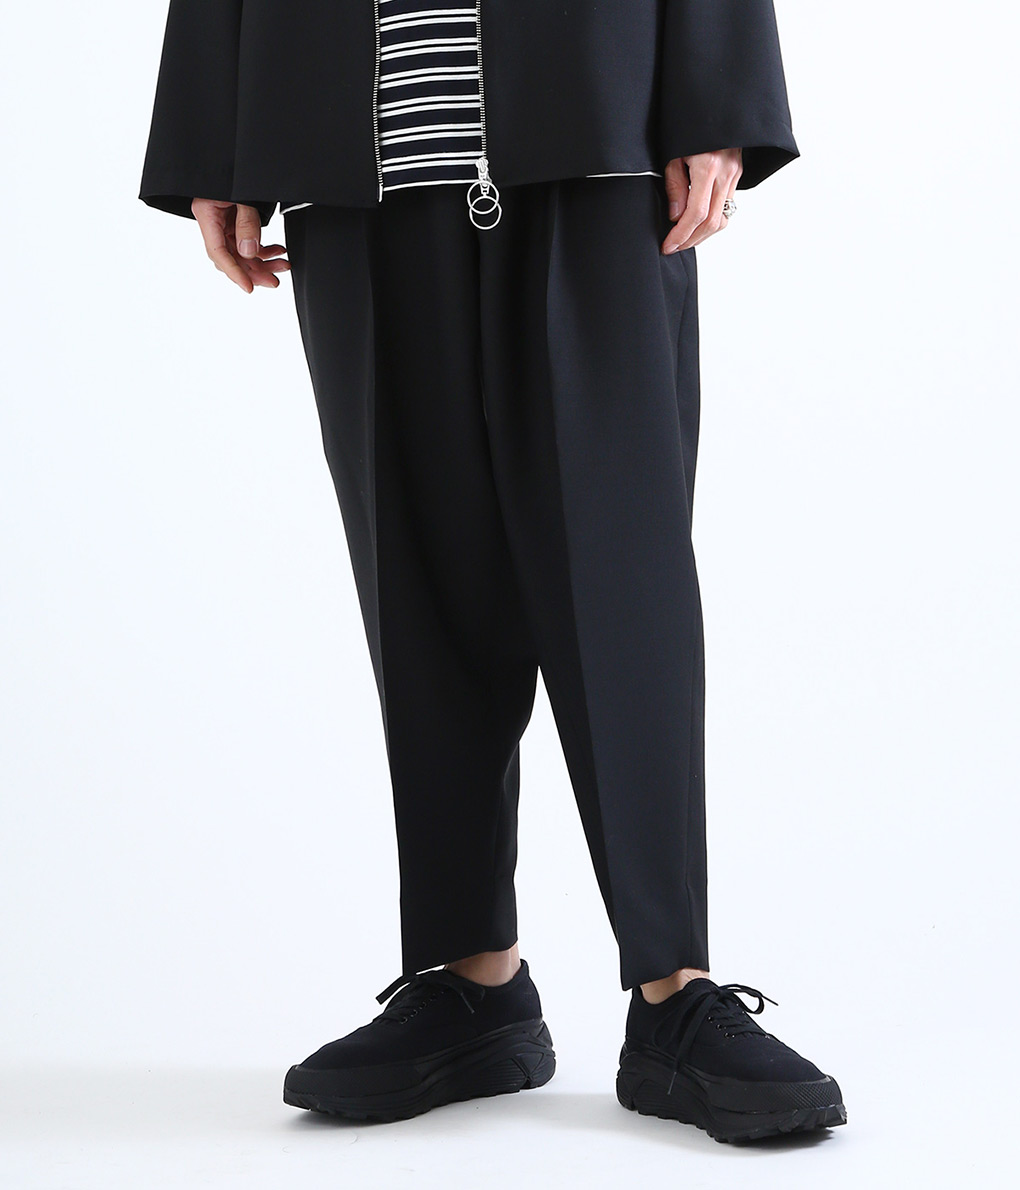 marka / マーカ : 2TUCK COCOON TAPERED FIT - w.m - : ツータック コクーン テーパード パンツ フィット 2タック : M19A-12PT02C 【WIS】